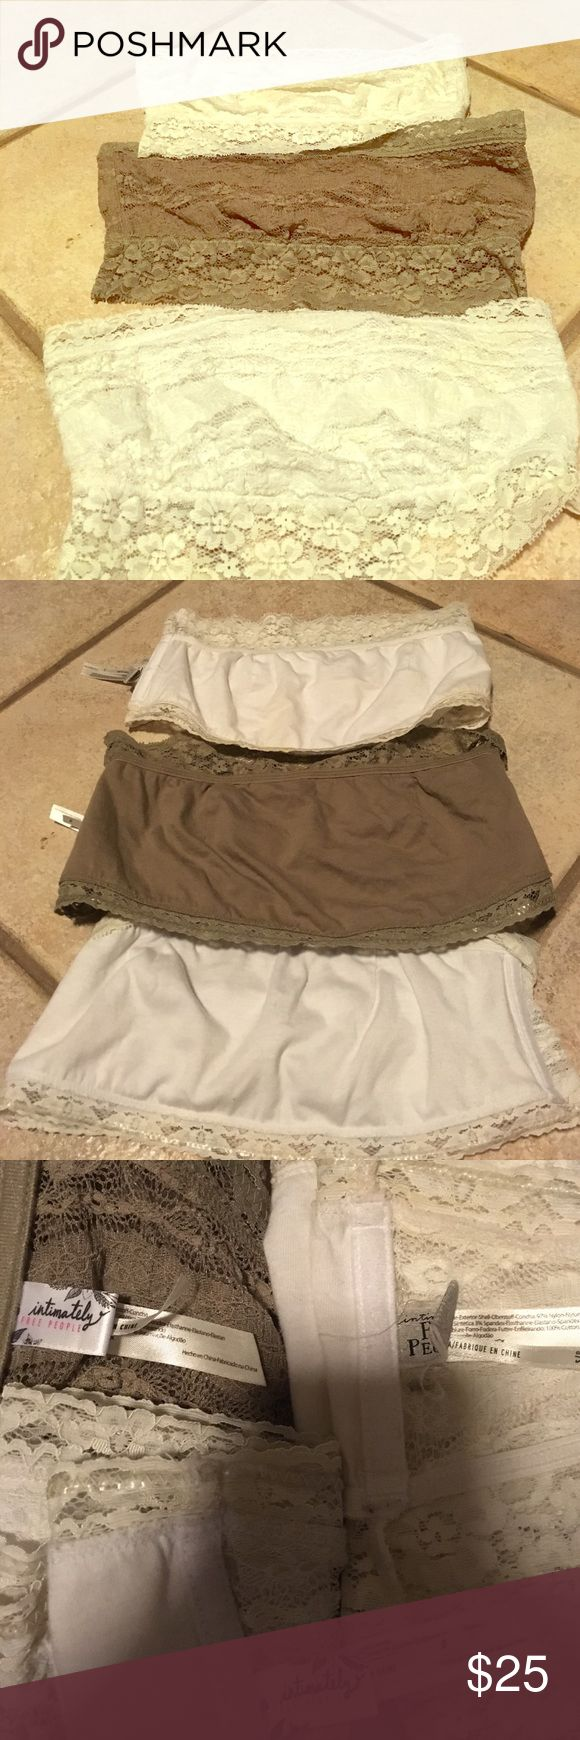 Free people bandeaus 3 free people bandeaus. The white one are a small and a med. the tan is Lg. Price is for all 3 Free People Intimates & Sleepwear Bandeaus